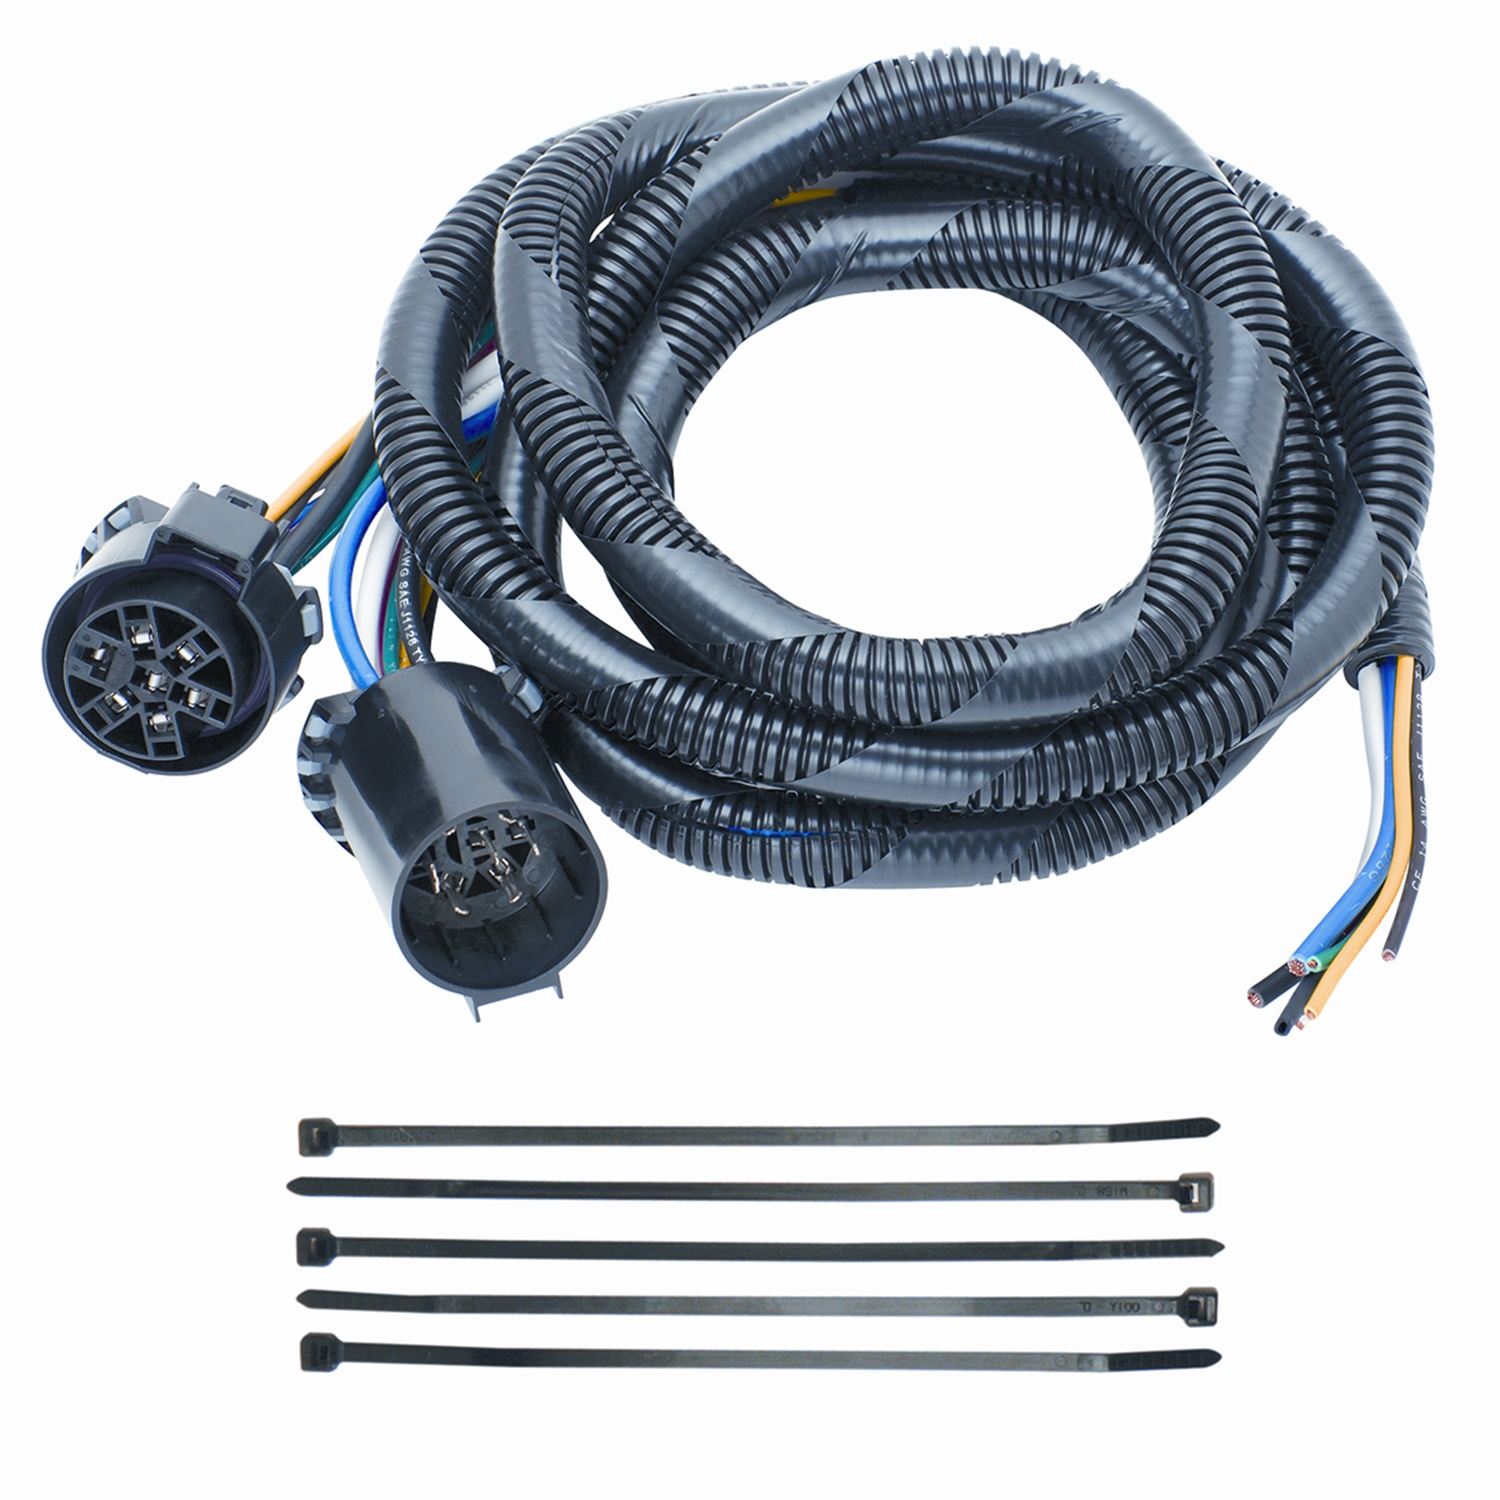 Tow Ready 20140 Trailer Wiring Connector Ram Wire Harness Pinout